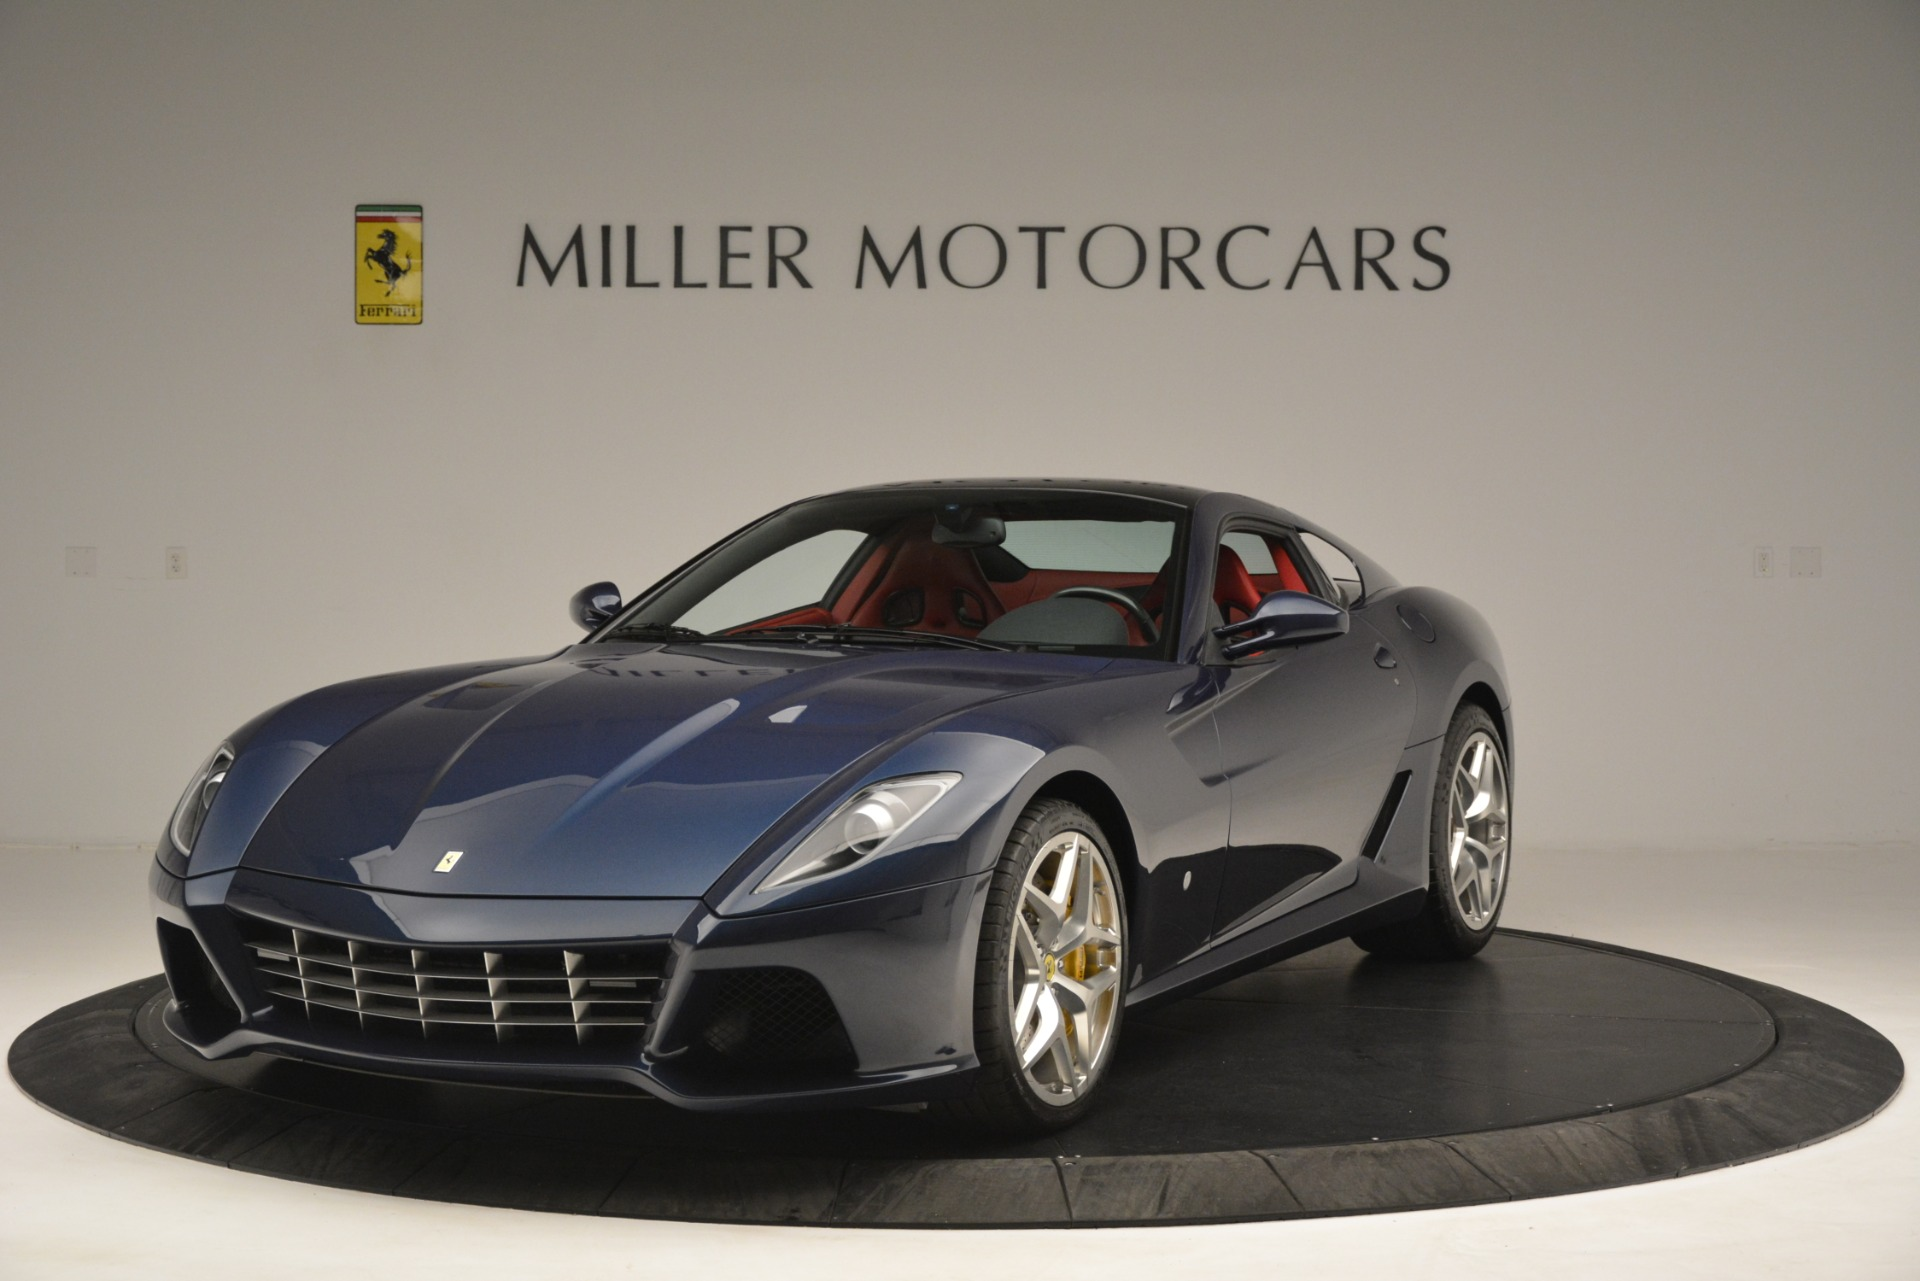 Used 2008 Ferrari 599 GTB Fiorano for sale Sold at Rolls-Royce Motor Cars Greenwich in Greenwich CT 06830 1